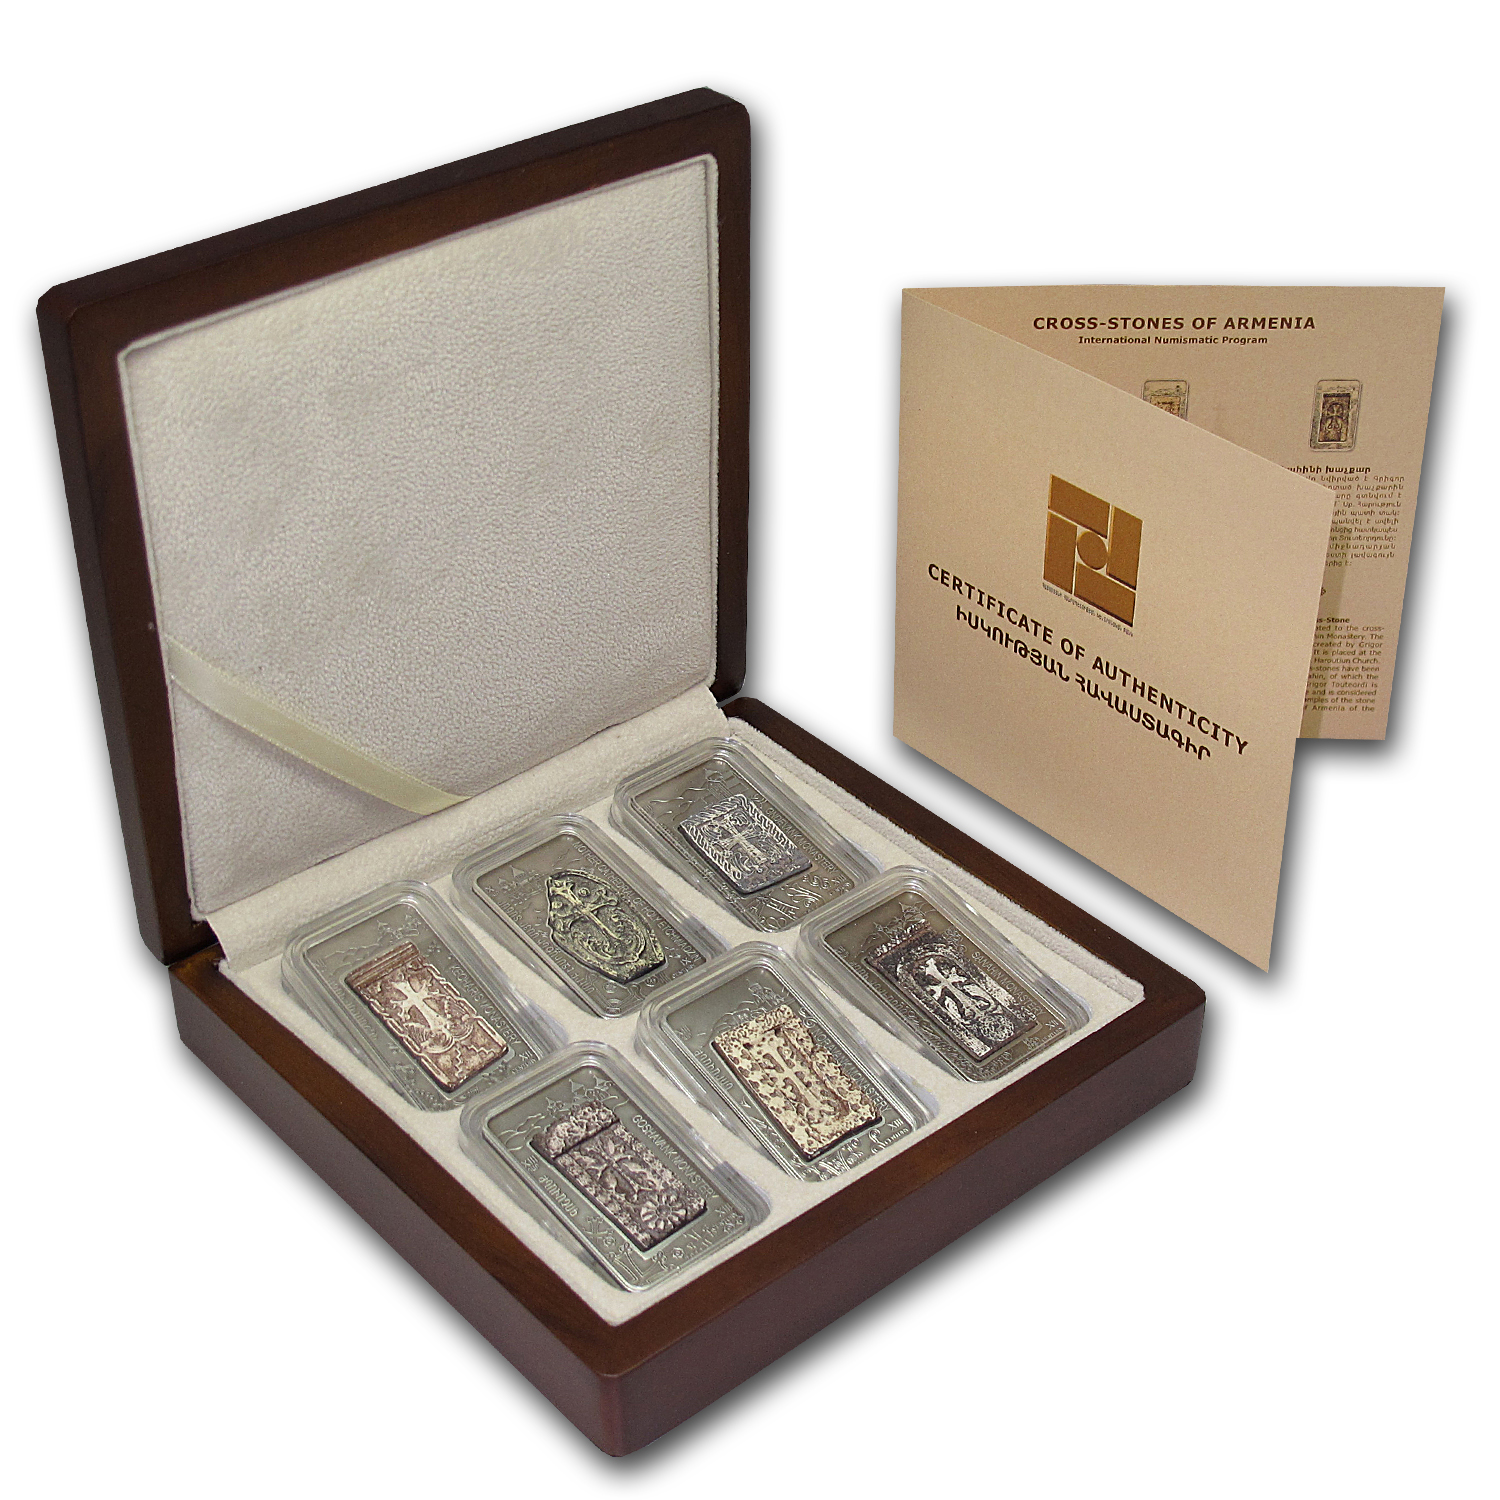 Armenia 2011 1000 Dram Cross-Stones of Armenia - Six Coin Set